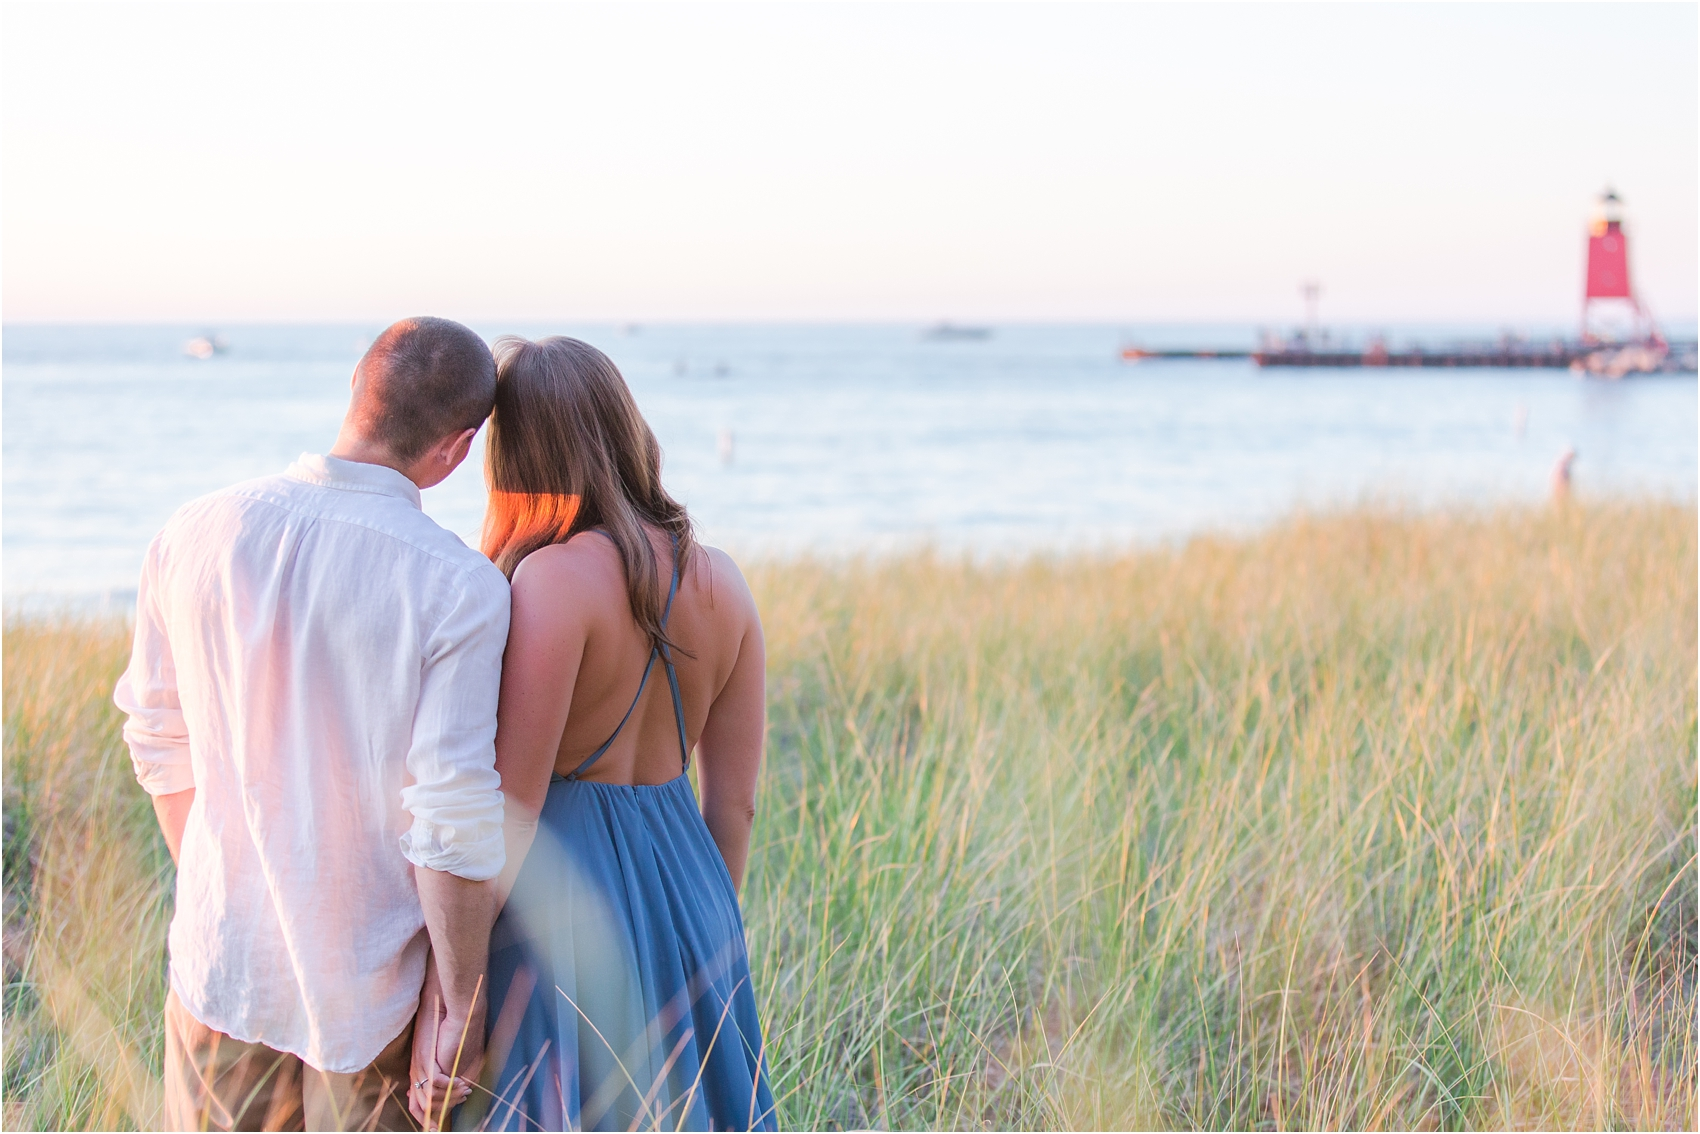 romantic-sunset-engagement-photos-at-michigan-beach-park-in-charlevoix-mi-by-courtney-carolyn-photography_0014.jpg